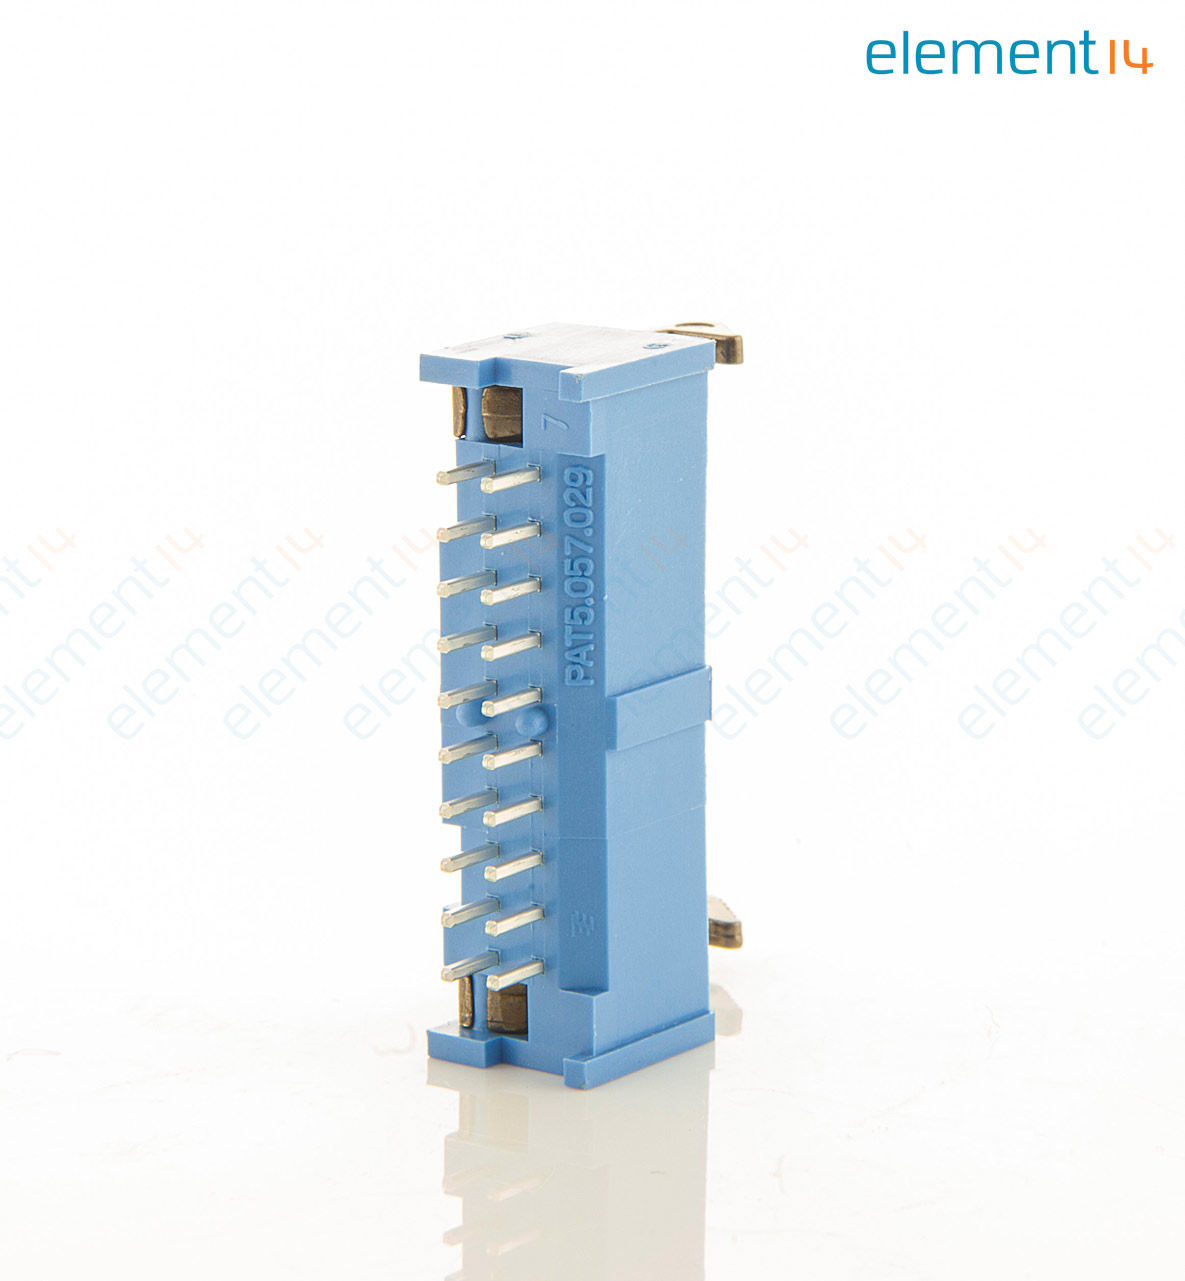 2-1761606-7 - AMP - TE CONNECTIVITY - Wire-To-Board Connector, 2.54 ...